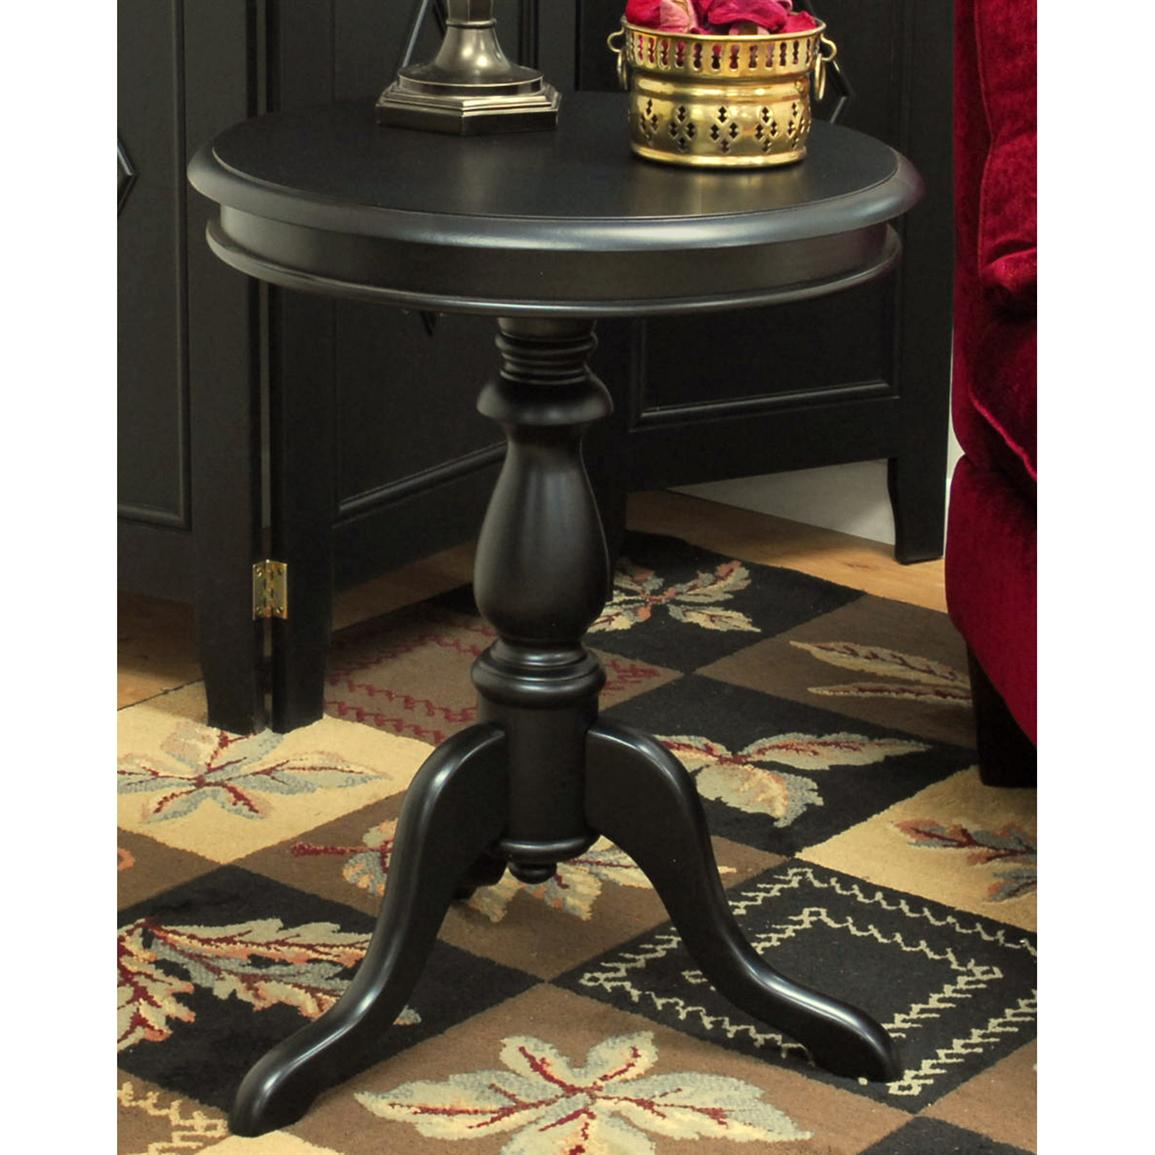 decor antique pedestal distressed room for table wood bathroom diy round tiny nursery furniture base accent black tables living tall sim lights gourd white small hallway lamps